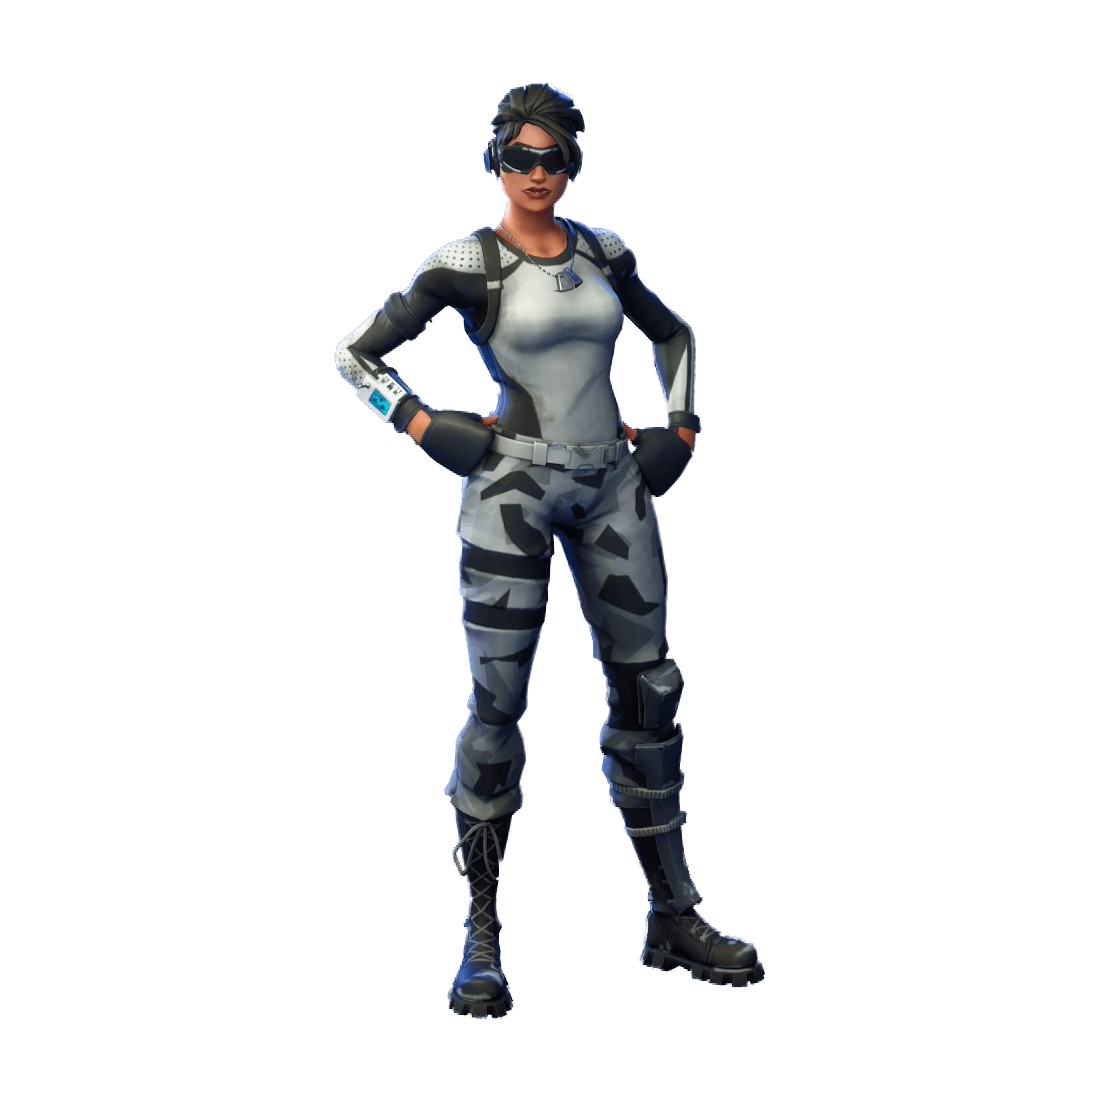 Pin von Fortnite4Life auf Fortnite Skins PNG in 2019 | Assassin ...